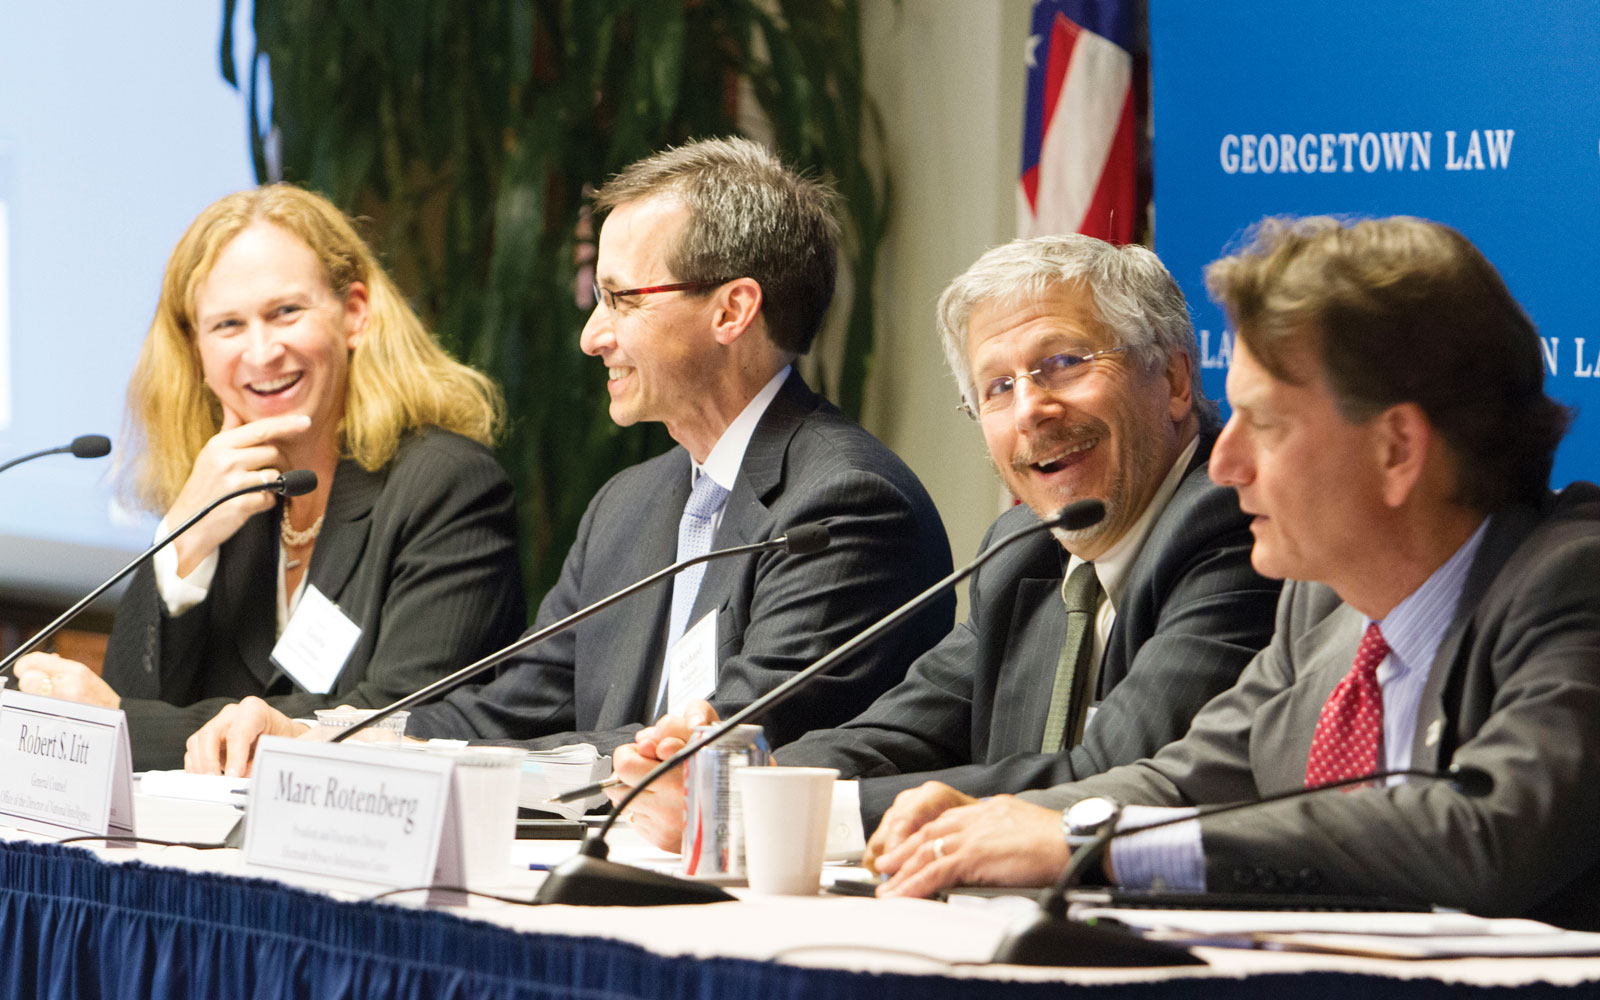 Panelists speak at event on national security and the law